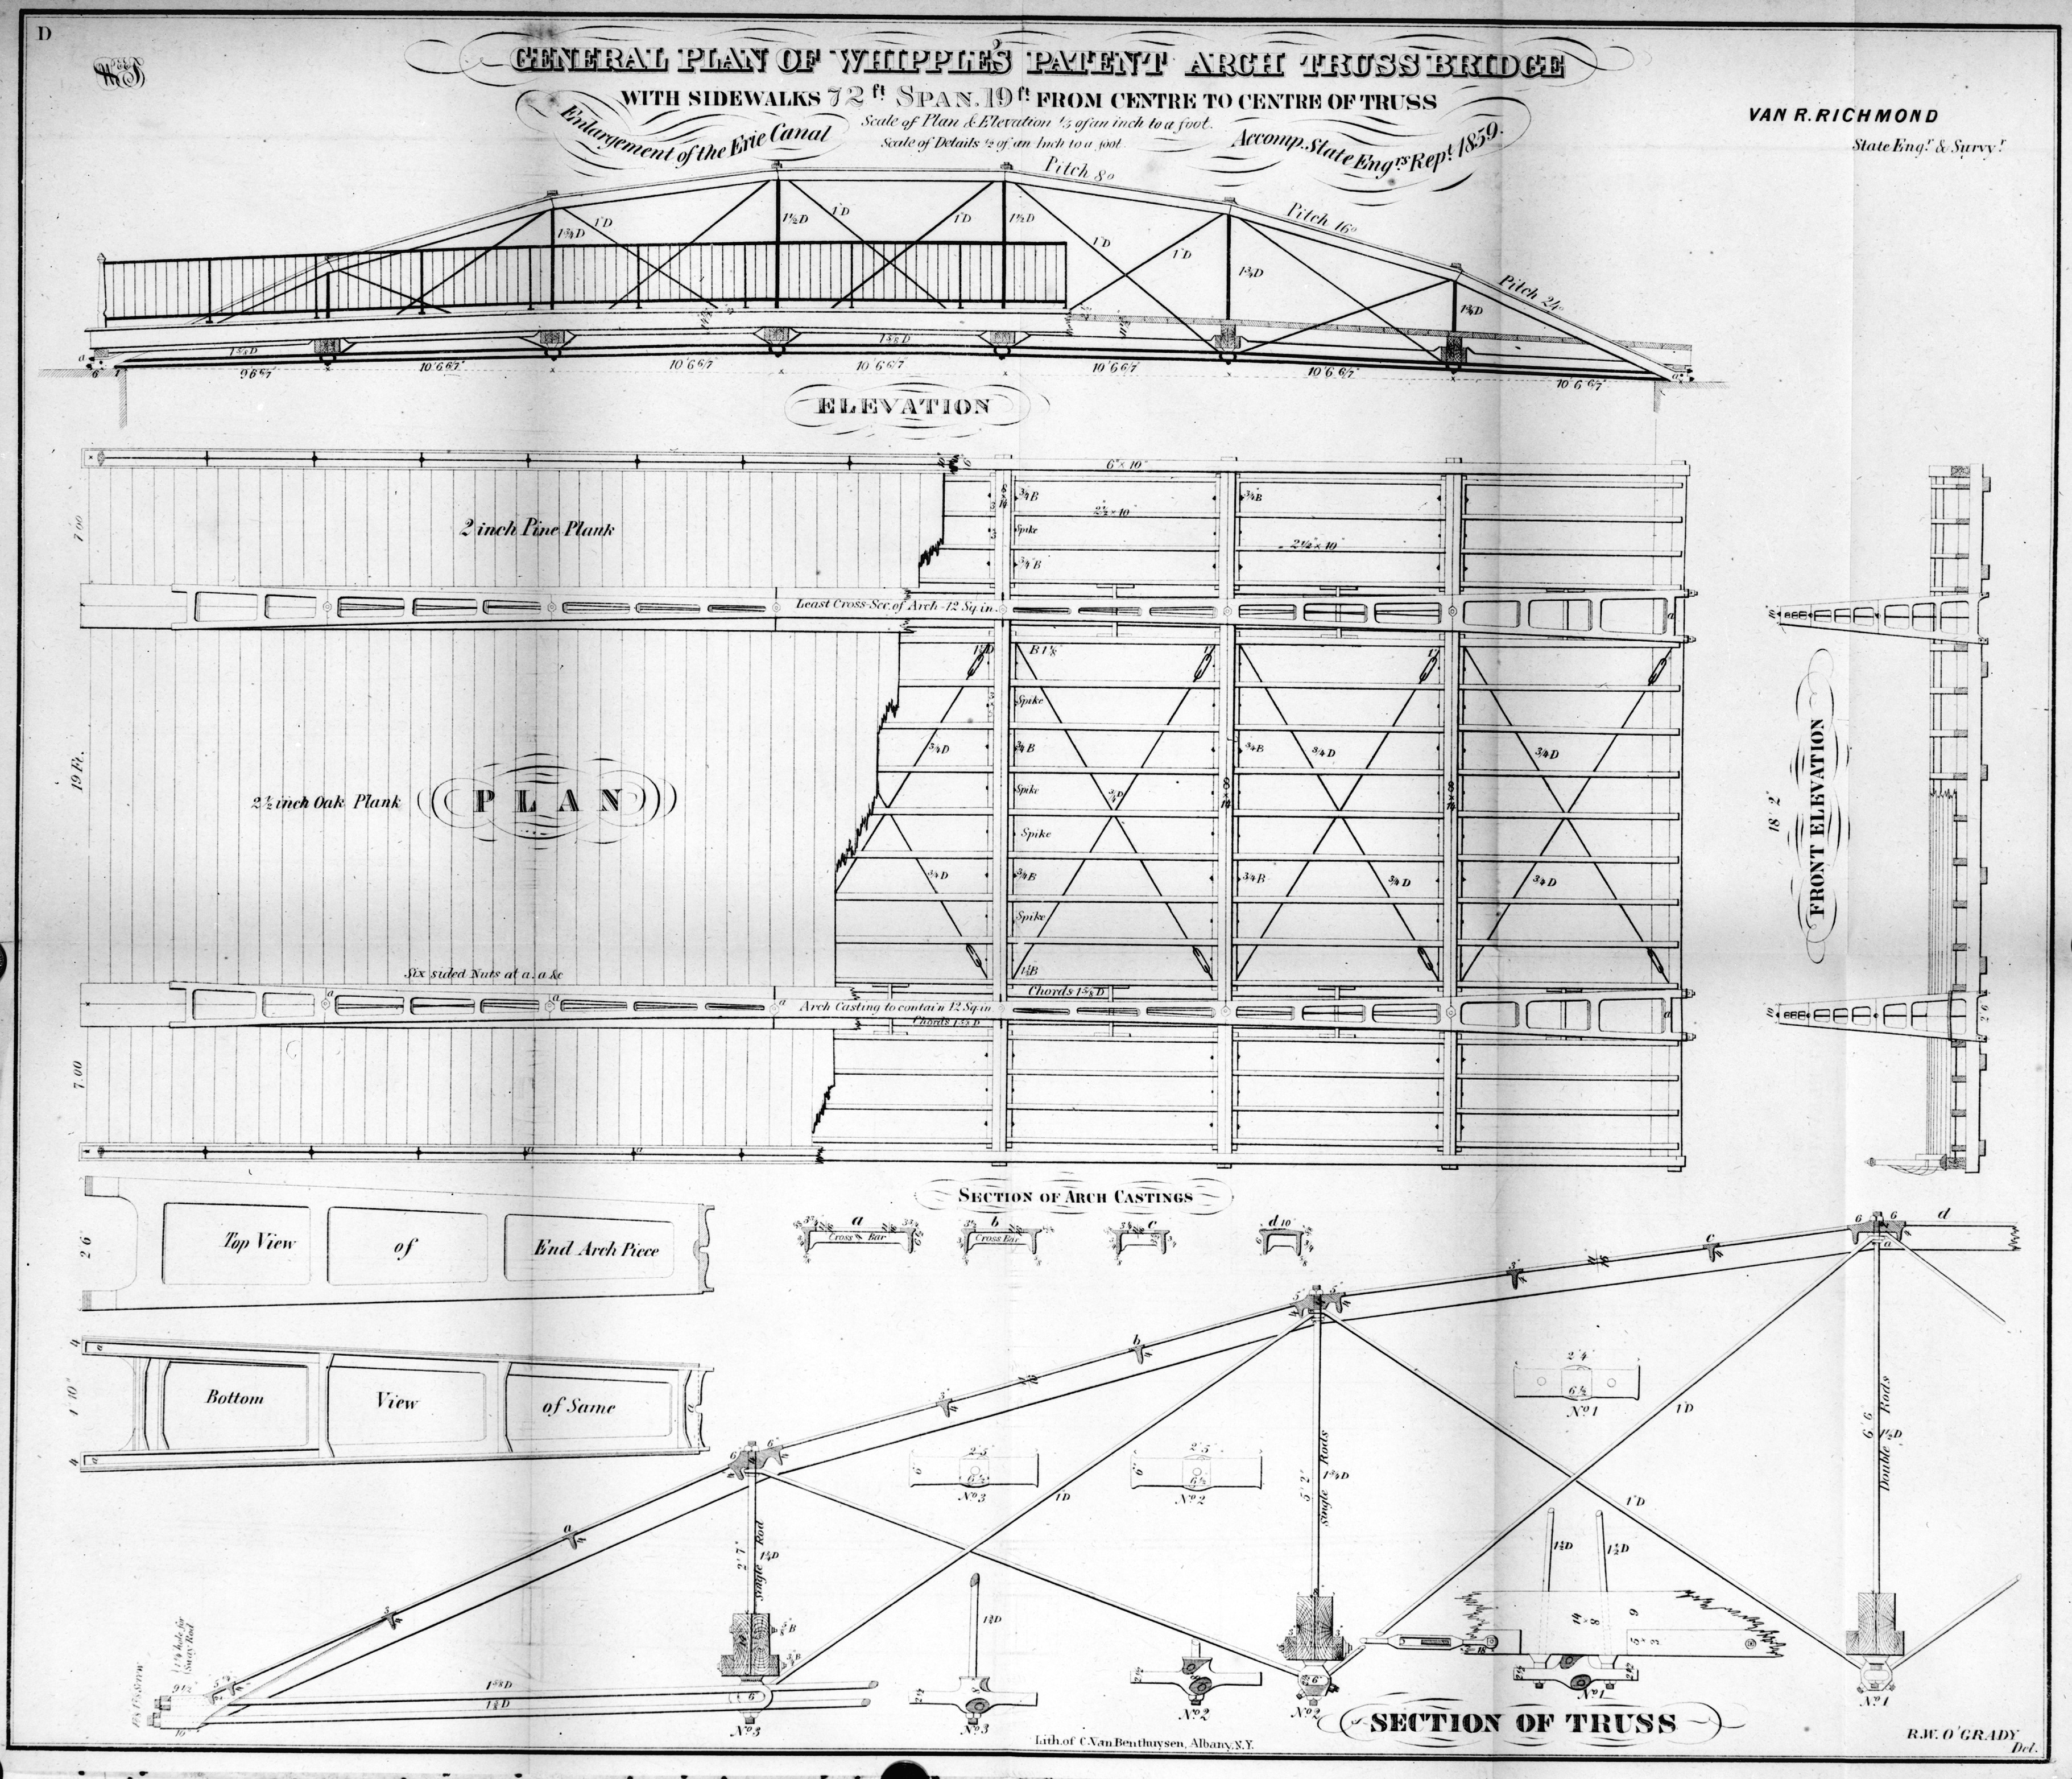 Normans Kill Ravine Bridge Normanskill Farm Truss Diagram Elevation Save The Is One Such Example Having Been Built By An Unaffiliated Builder Whipple Was Almost Certainly Not Personally